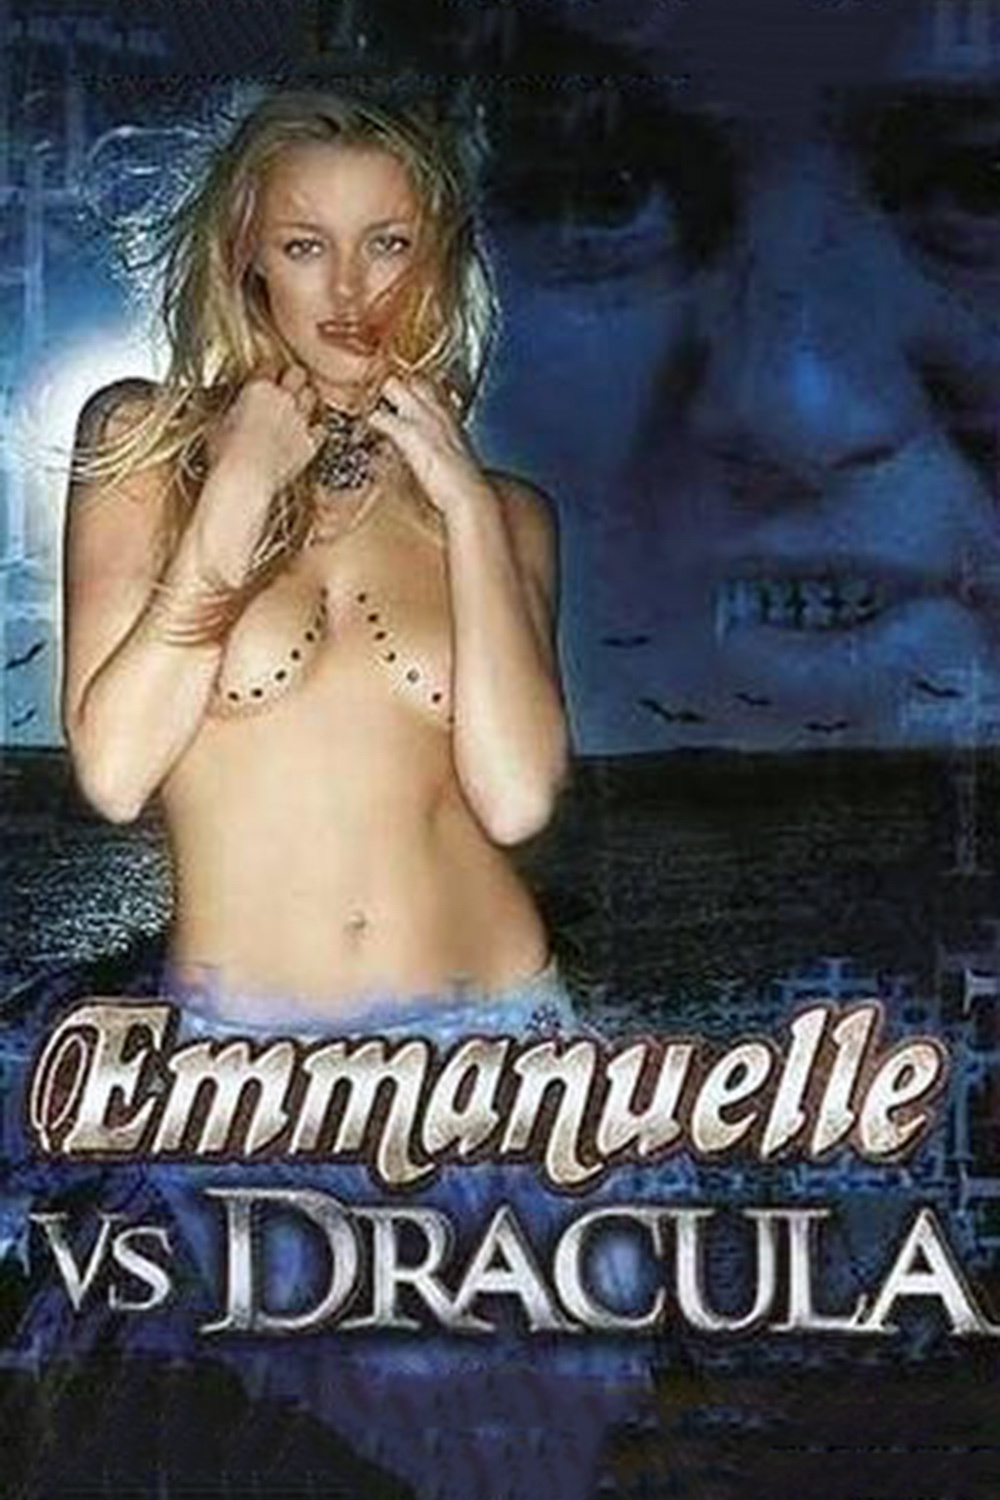 Dracula porn movie in hq 3gp nude photo